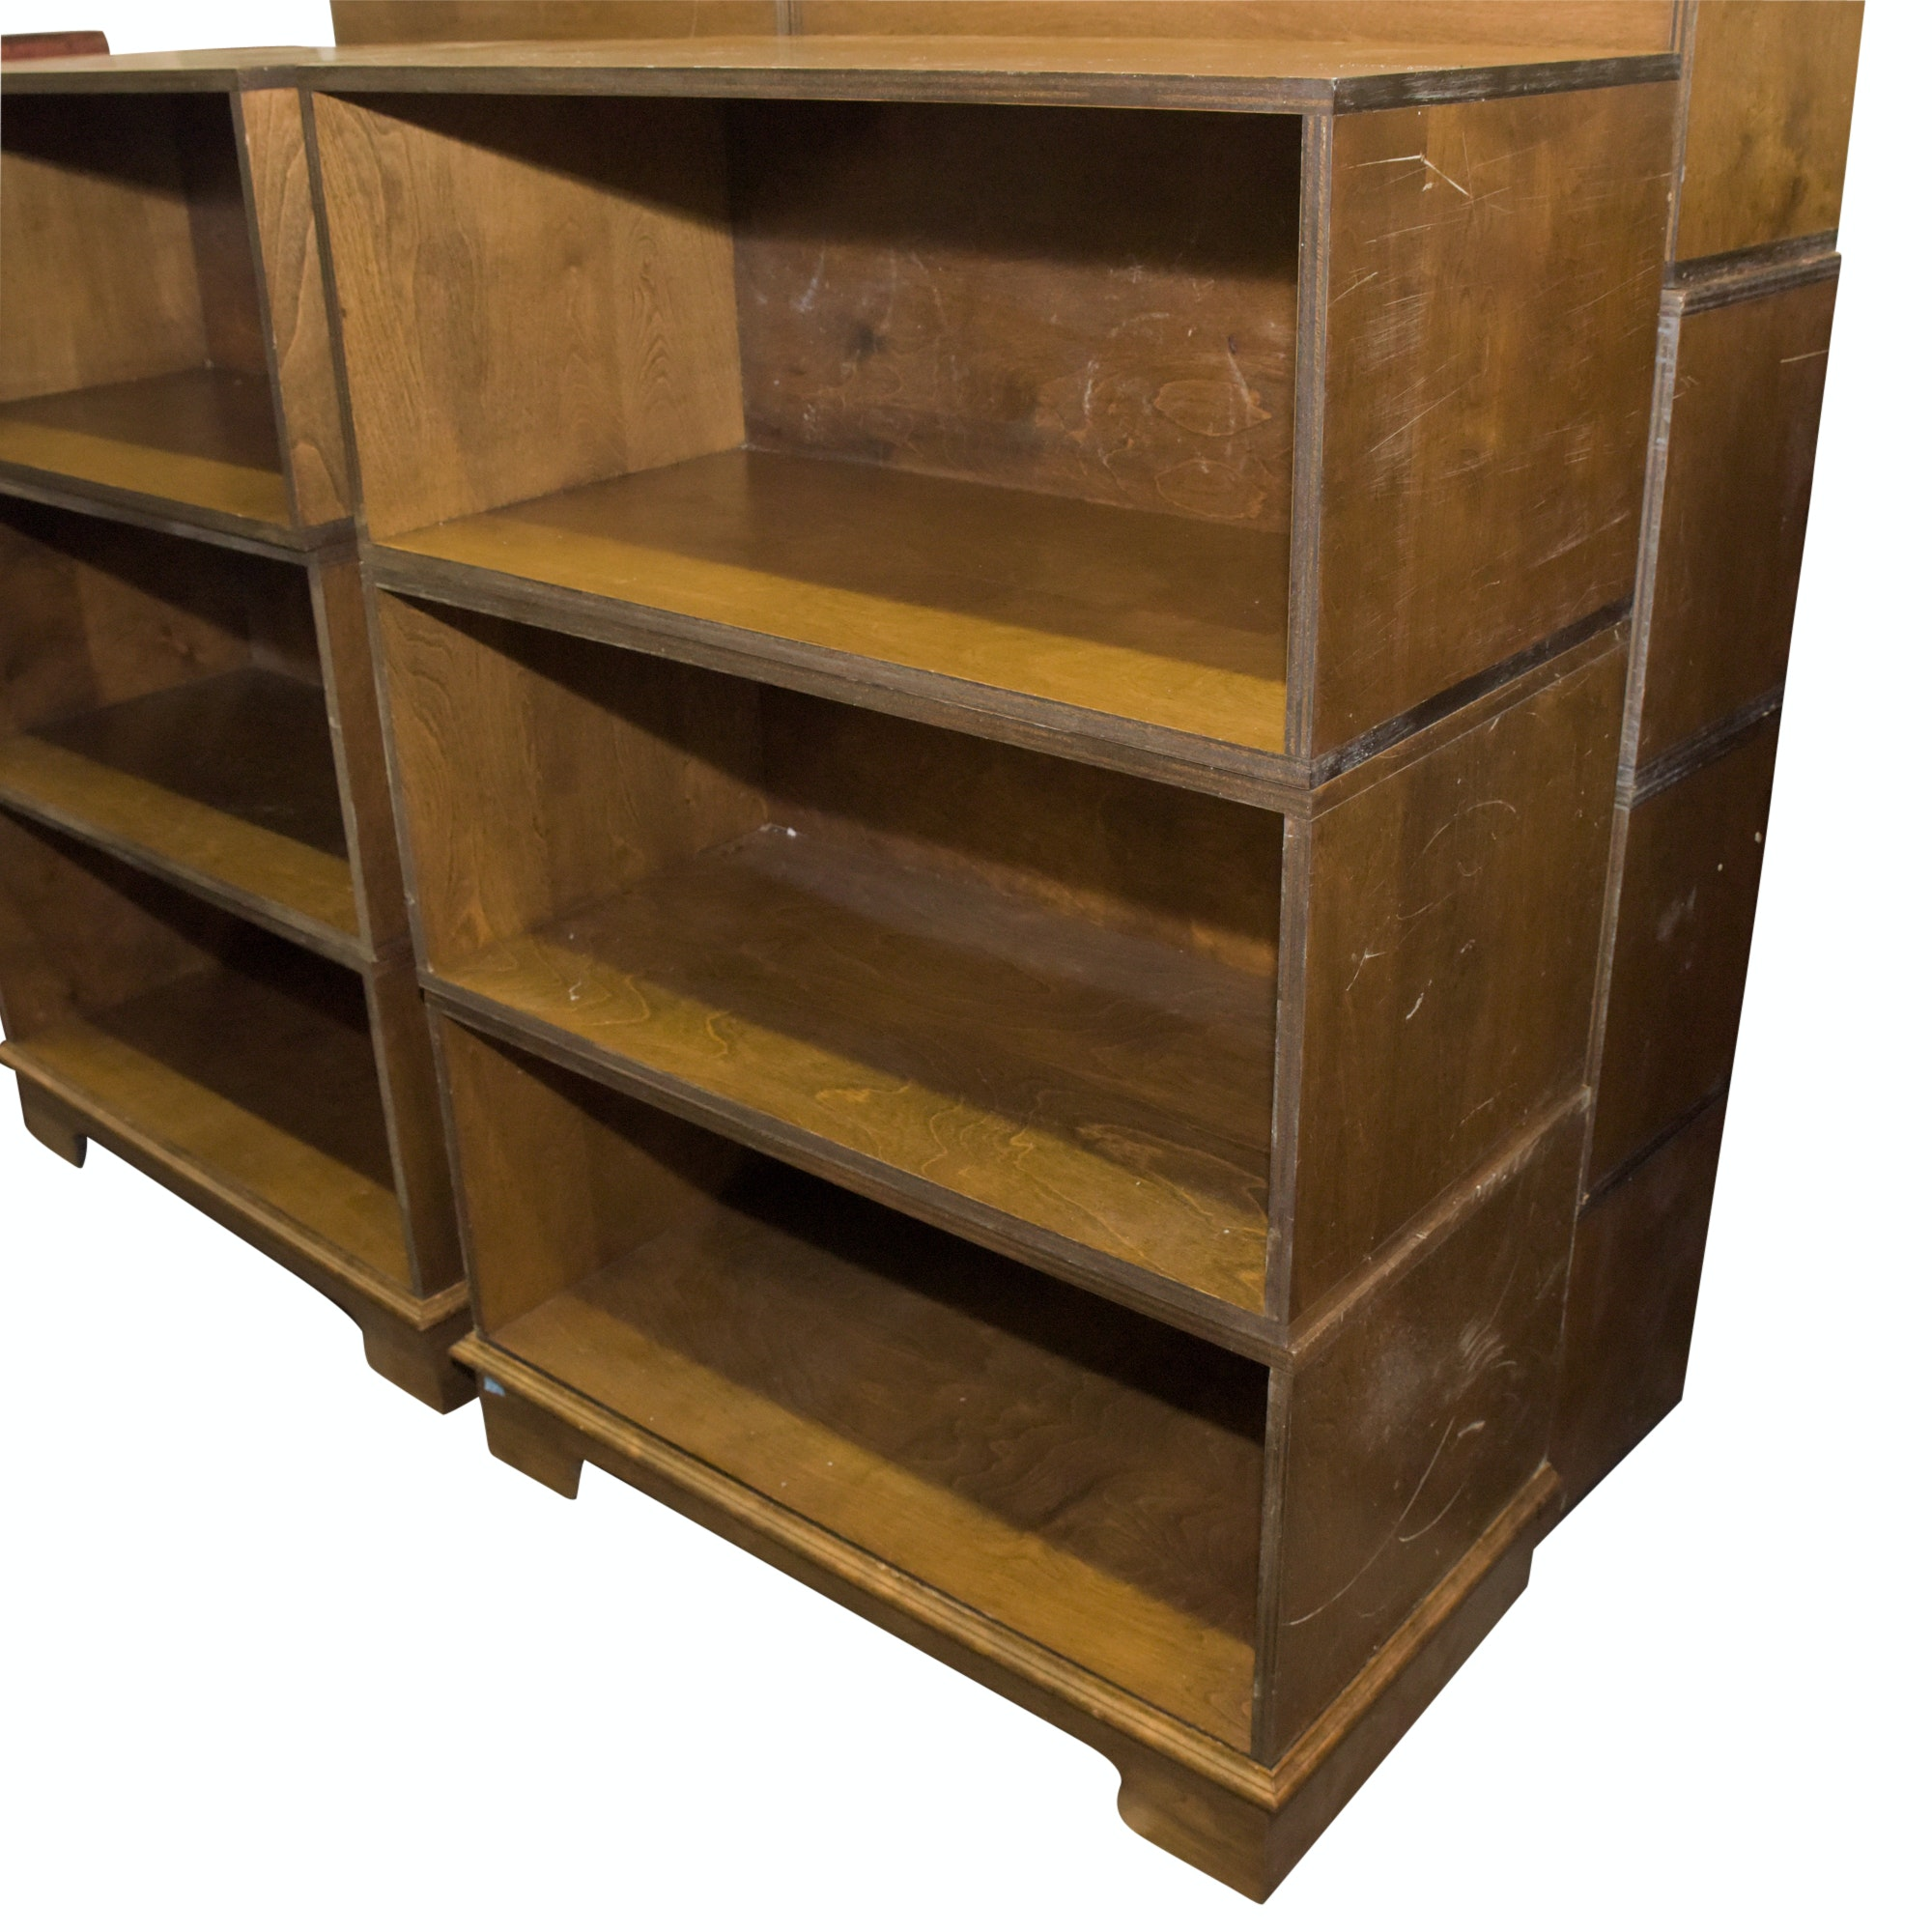 Pair of Modular Wooden Bookcases